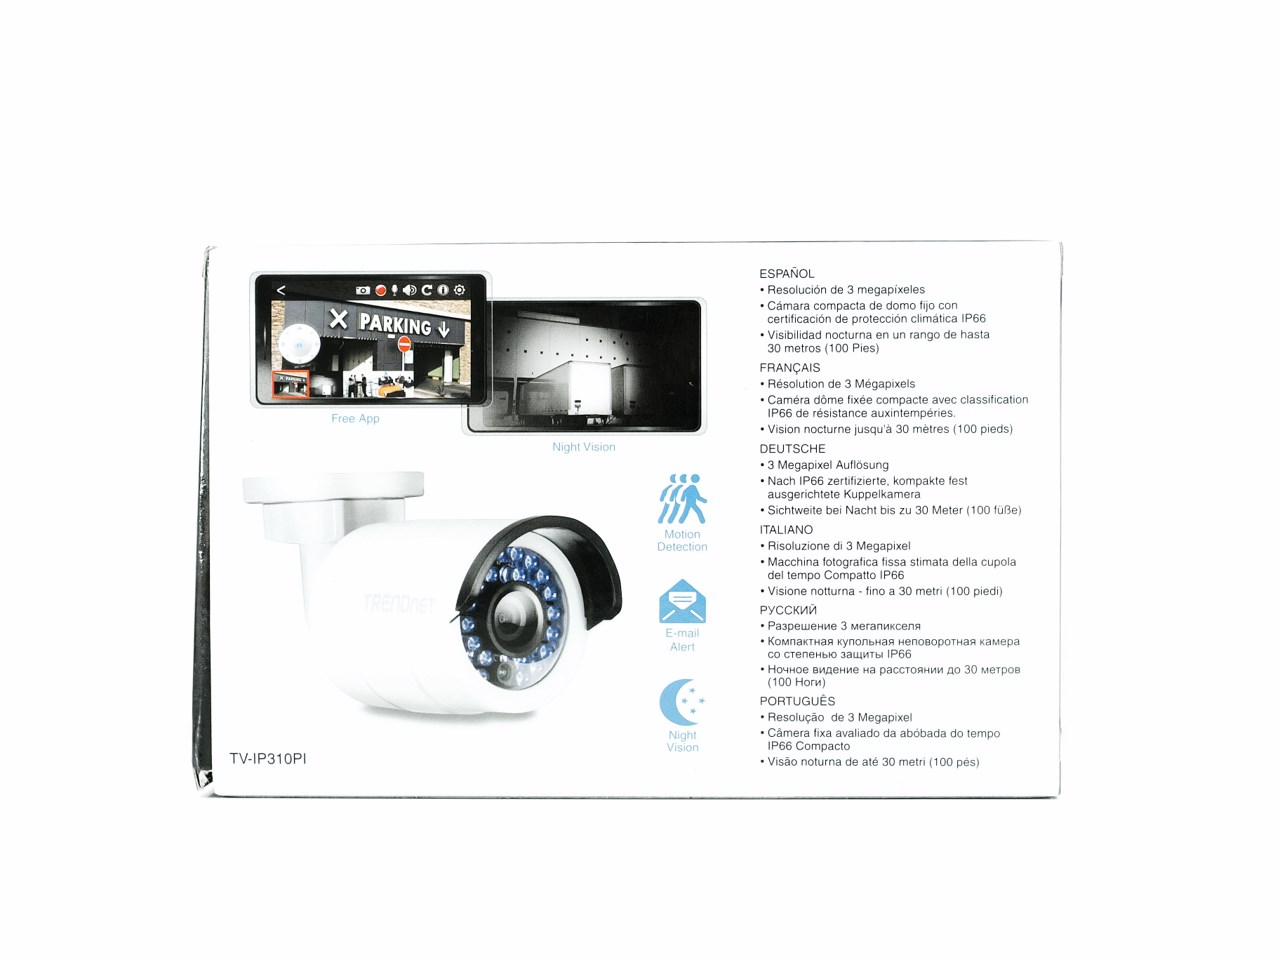 Trendnet Tv Ip310pi Outdoor 3 Mp Poe Day Night Network